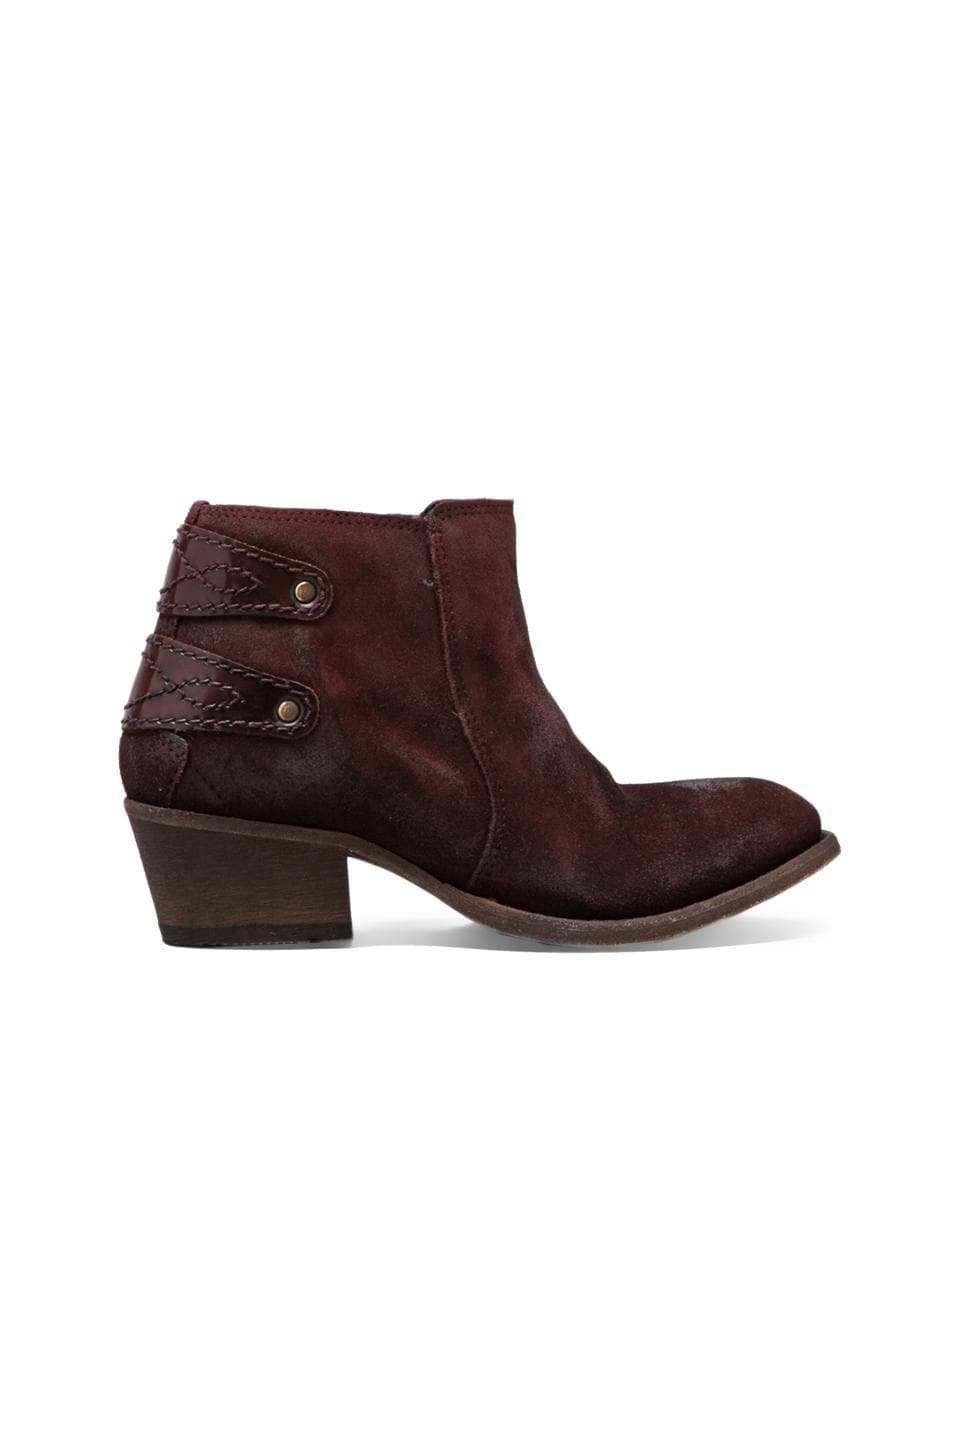 H by Hudson Rosse Boot in Bordo